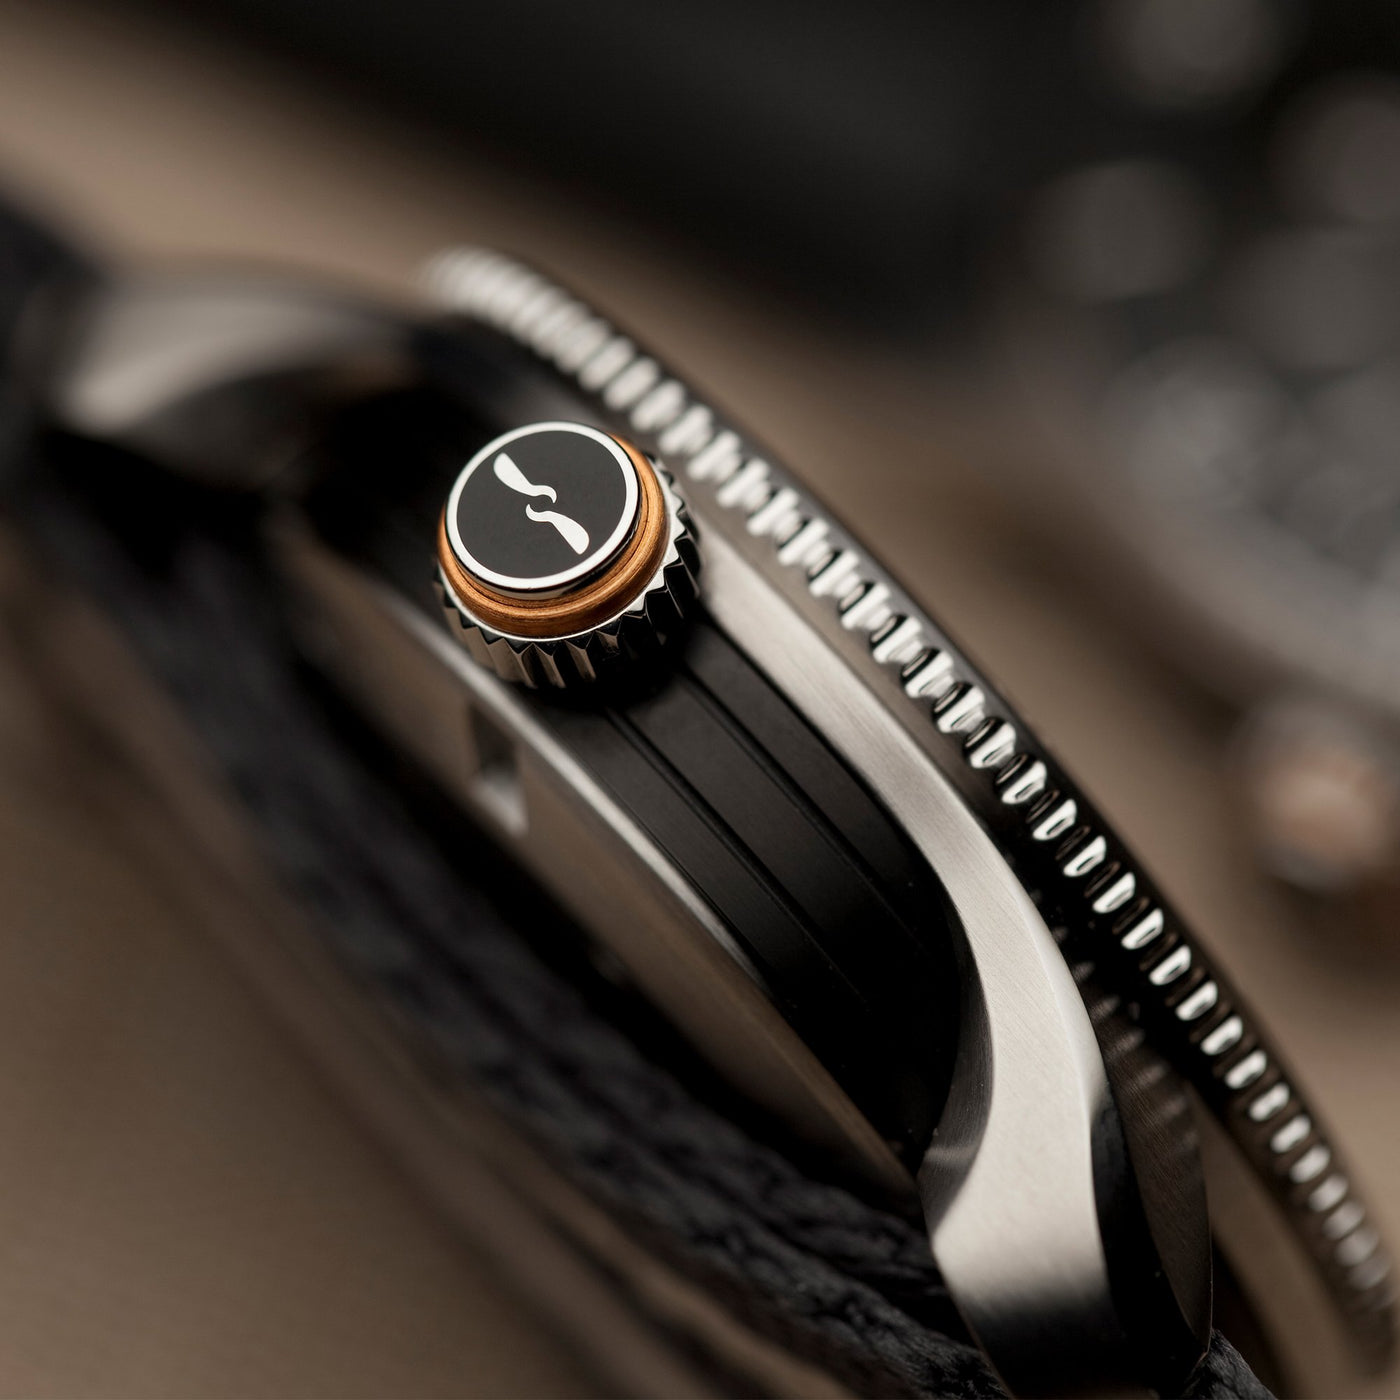 Bremont S300 Barrel